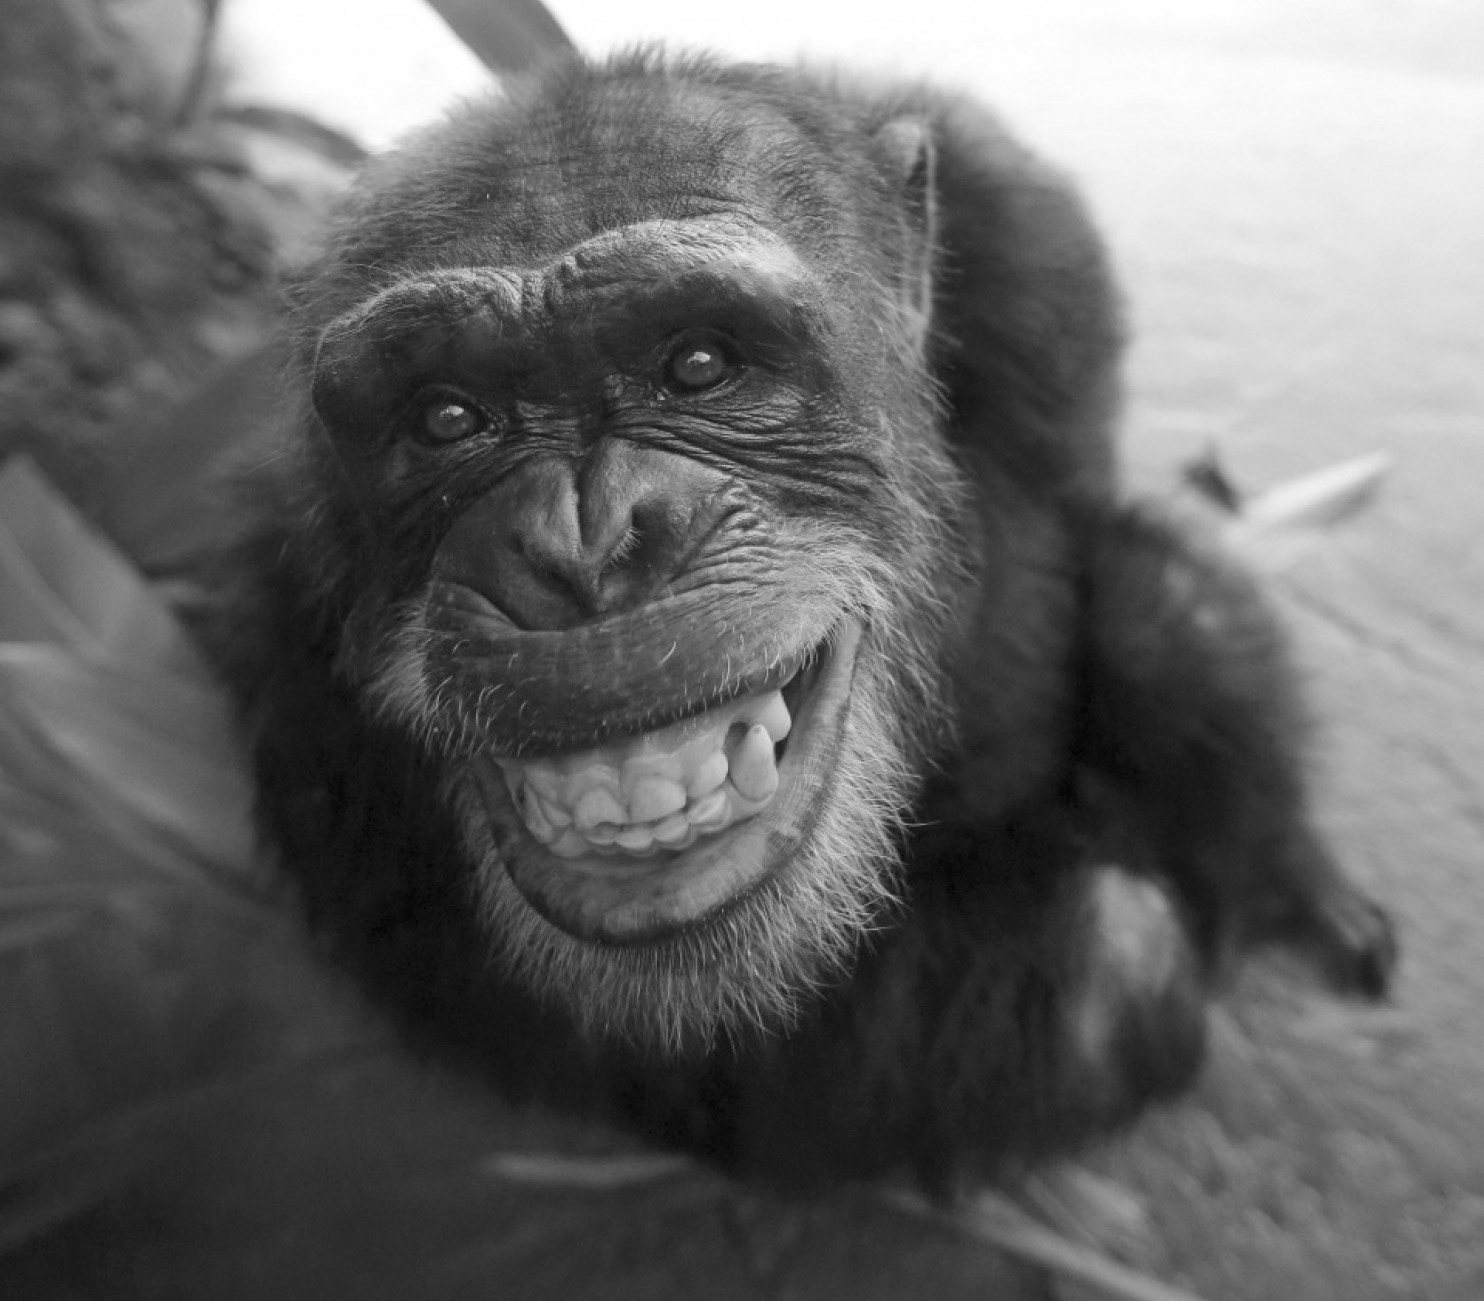 Chimps recognize butts like people recognize faces